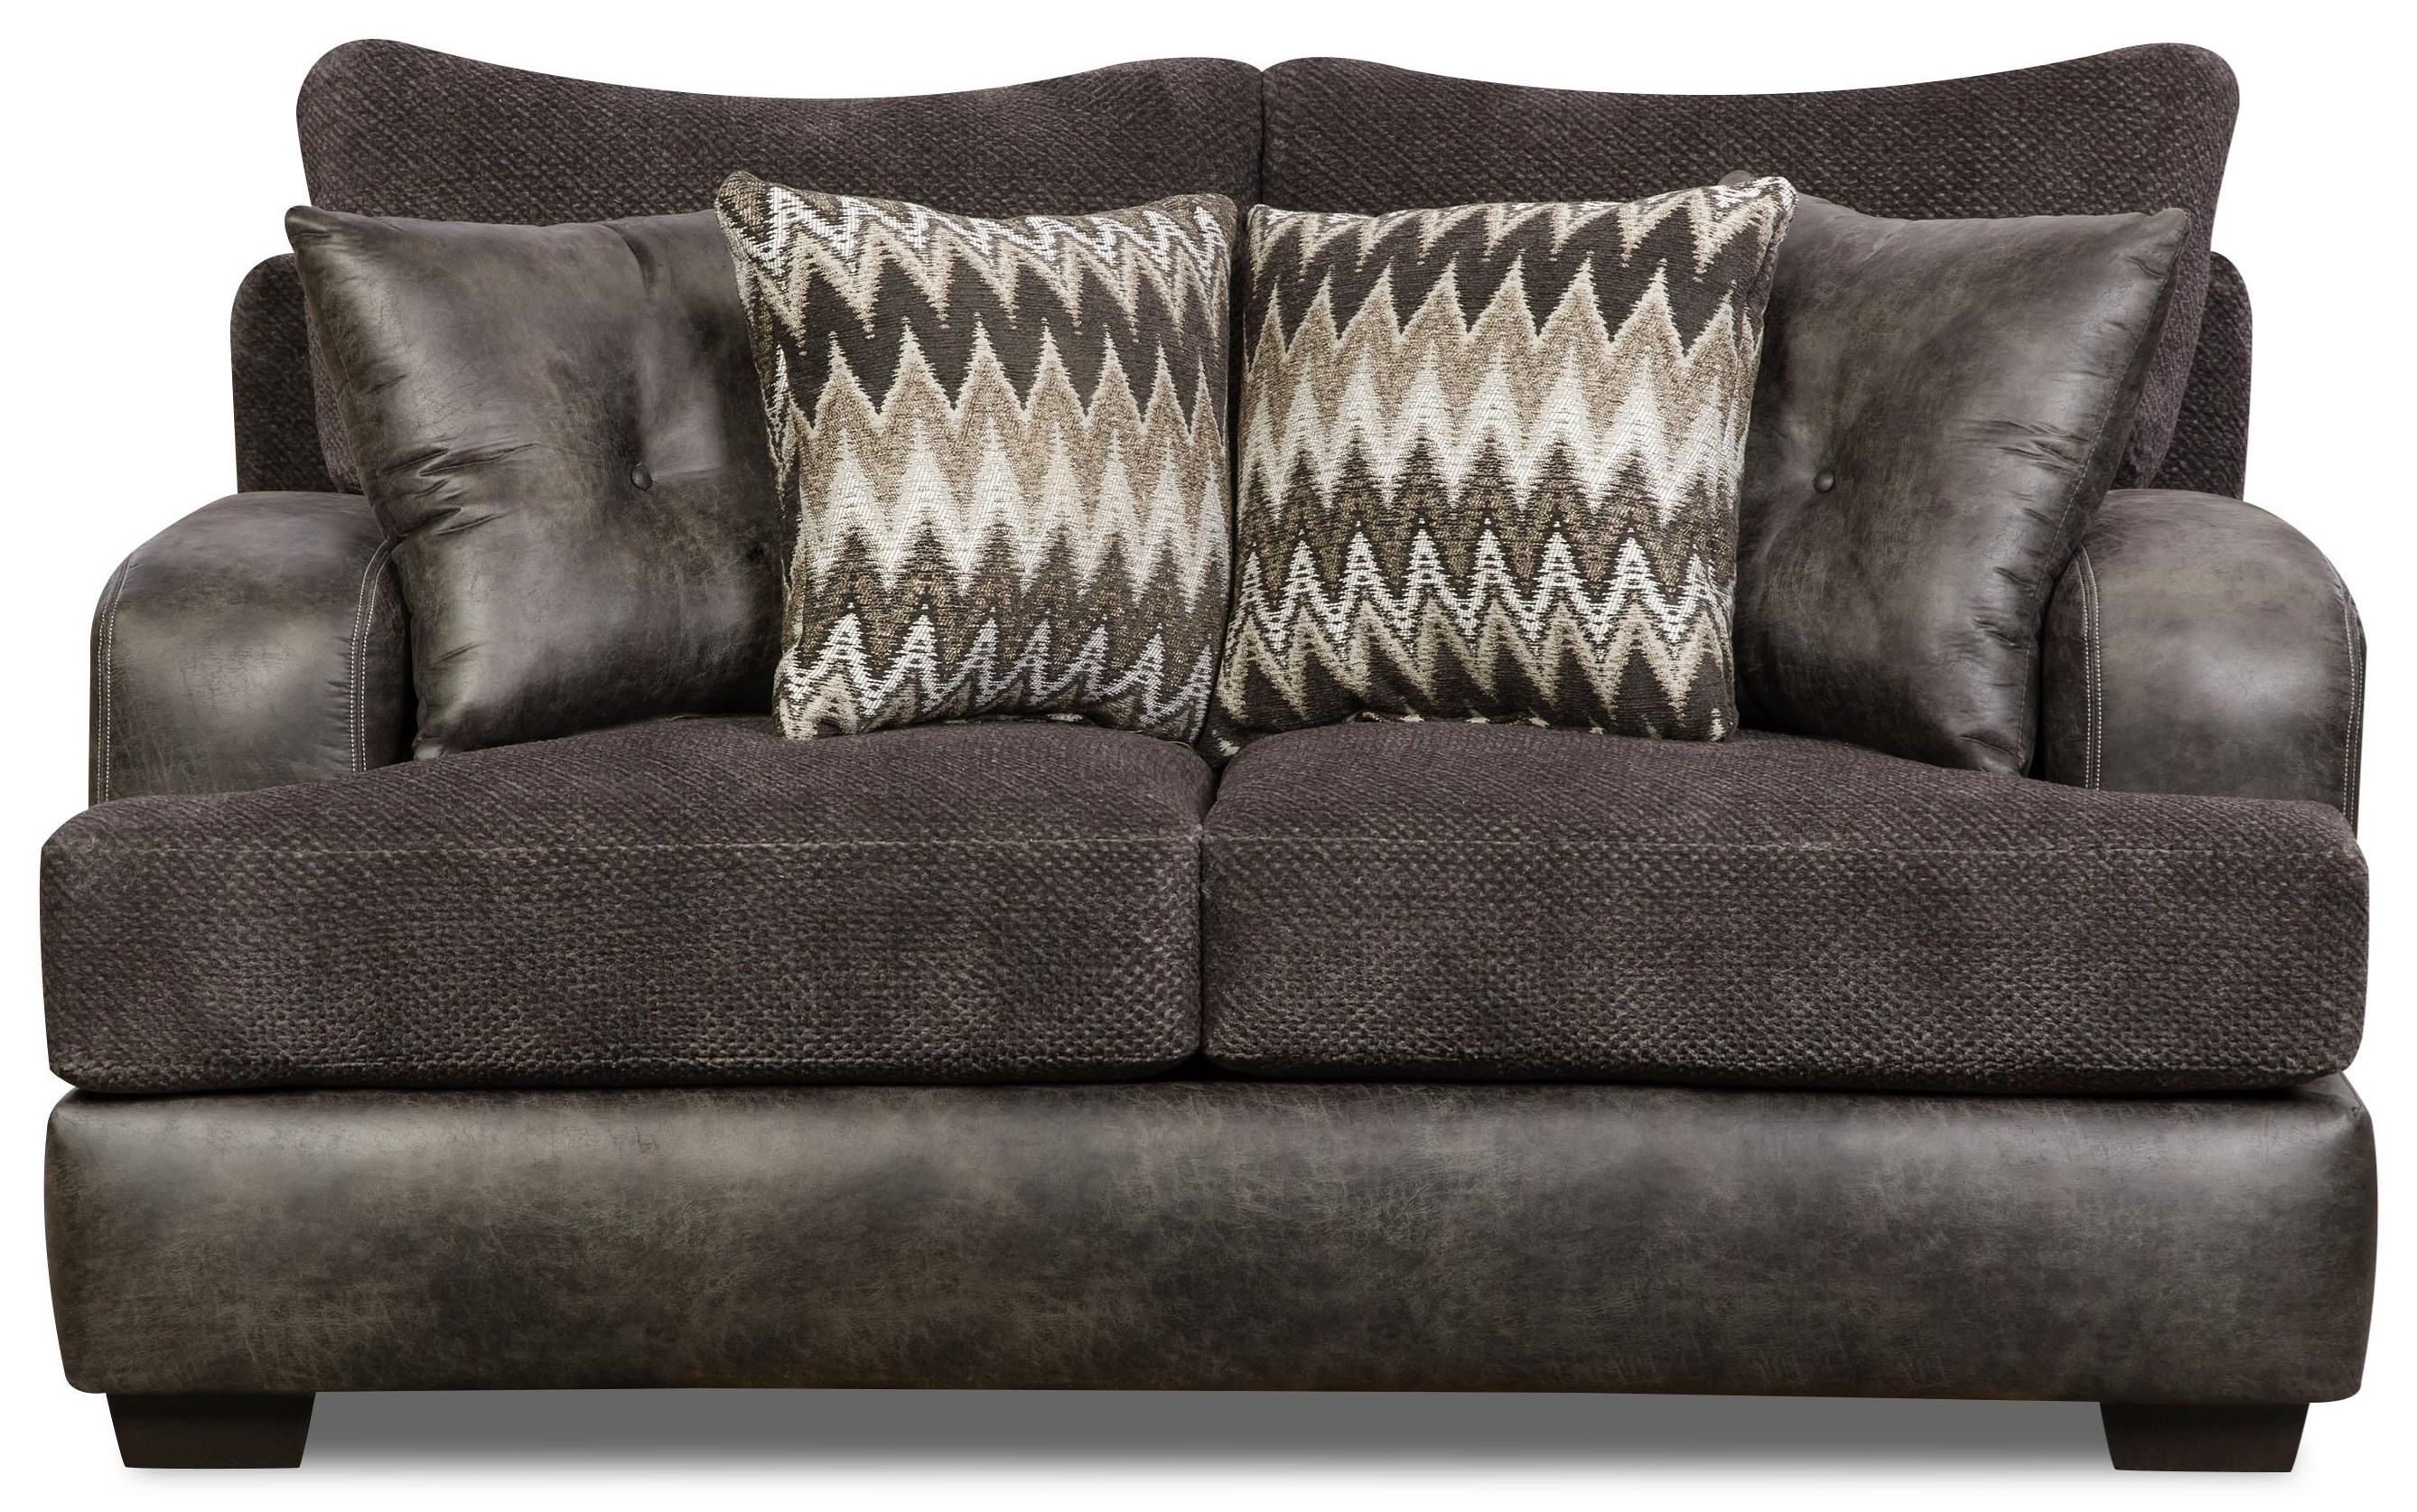 Corinthian Monroe Smoke Loveseat - Item Number: 5202-MONROE-SMOKE